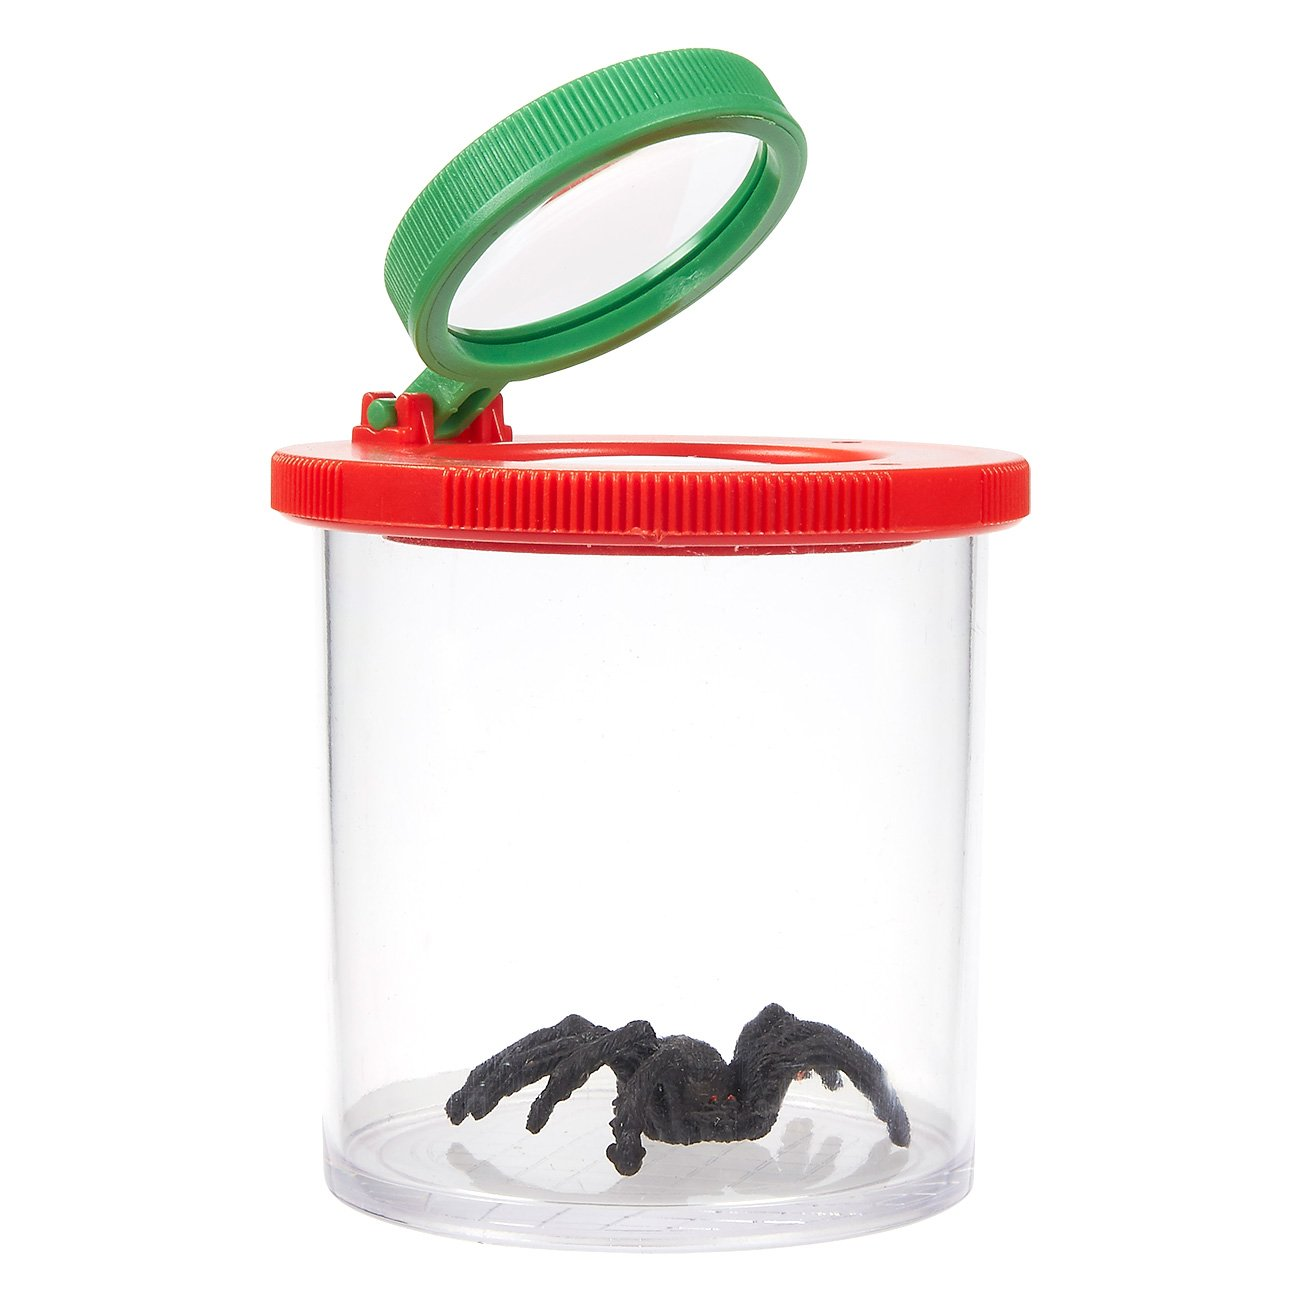 Bug Viewer Box - Bug Jar Children - Plastic Transparent Insect Catcher Kit 3X Magnifying Lens, 2.5 x 3.1 x 2.5 inches, Red Green